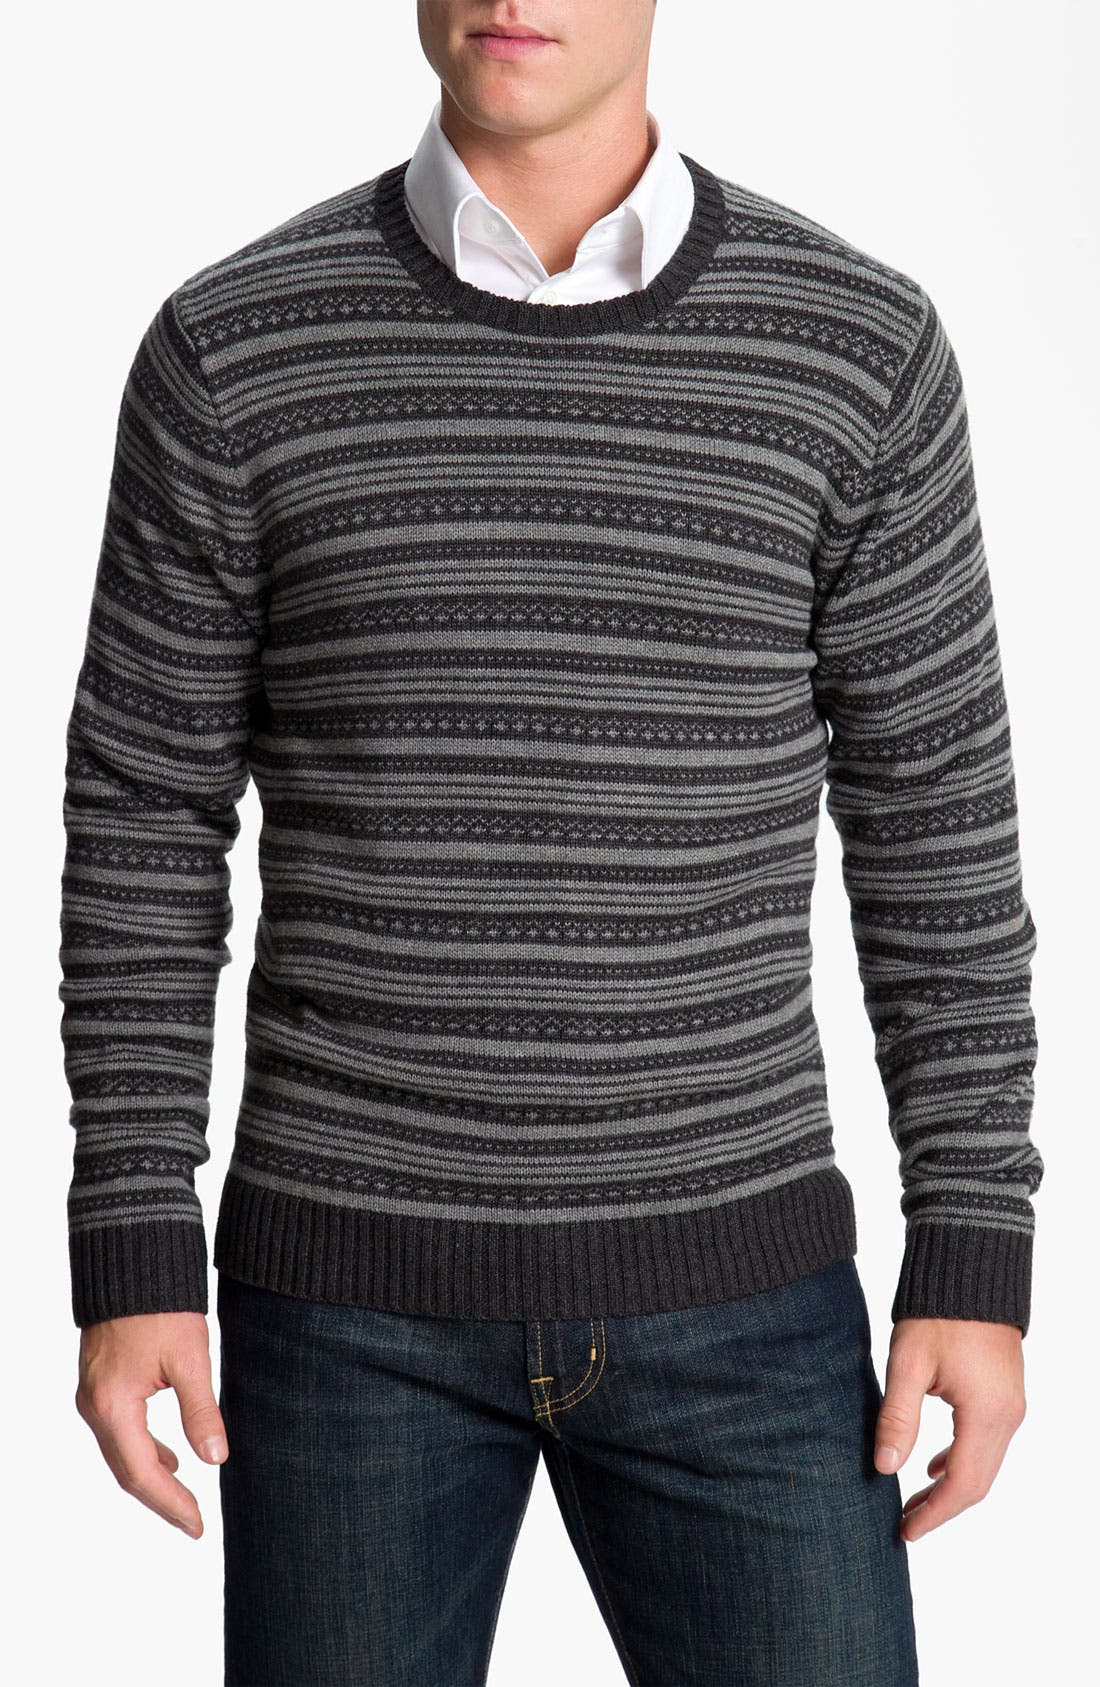 Main Image - Wallin & Bros. Fair Isle Cotton & Cashmere Sweater